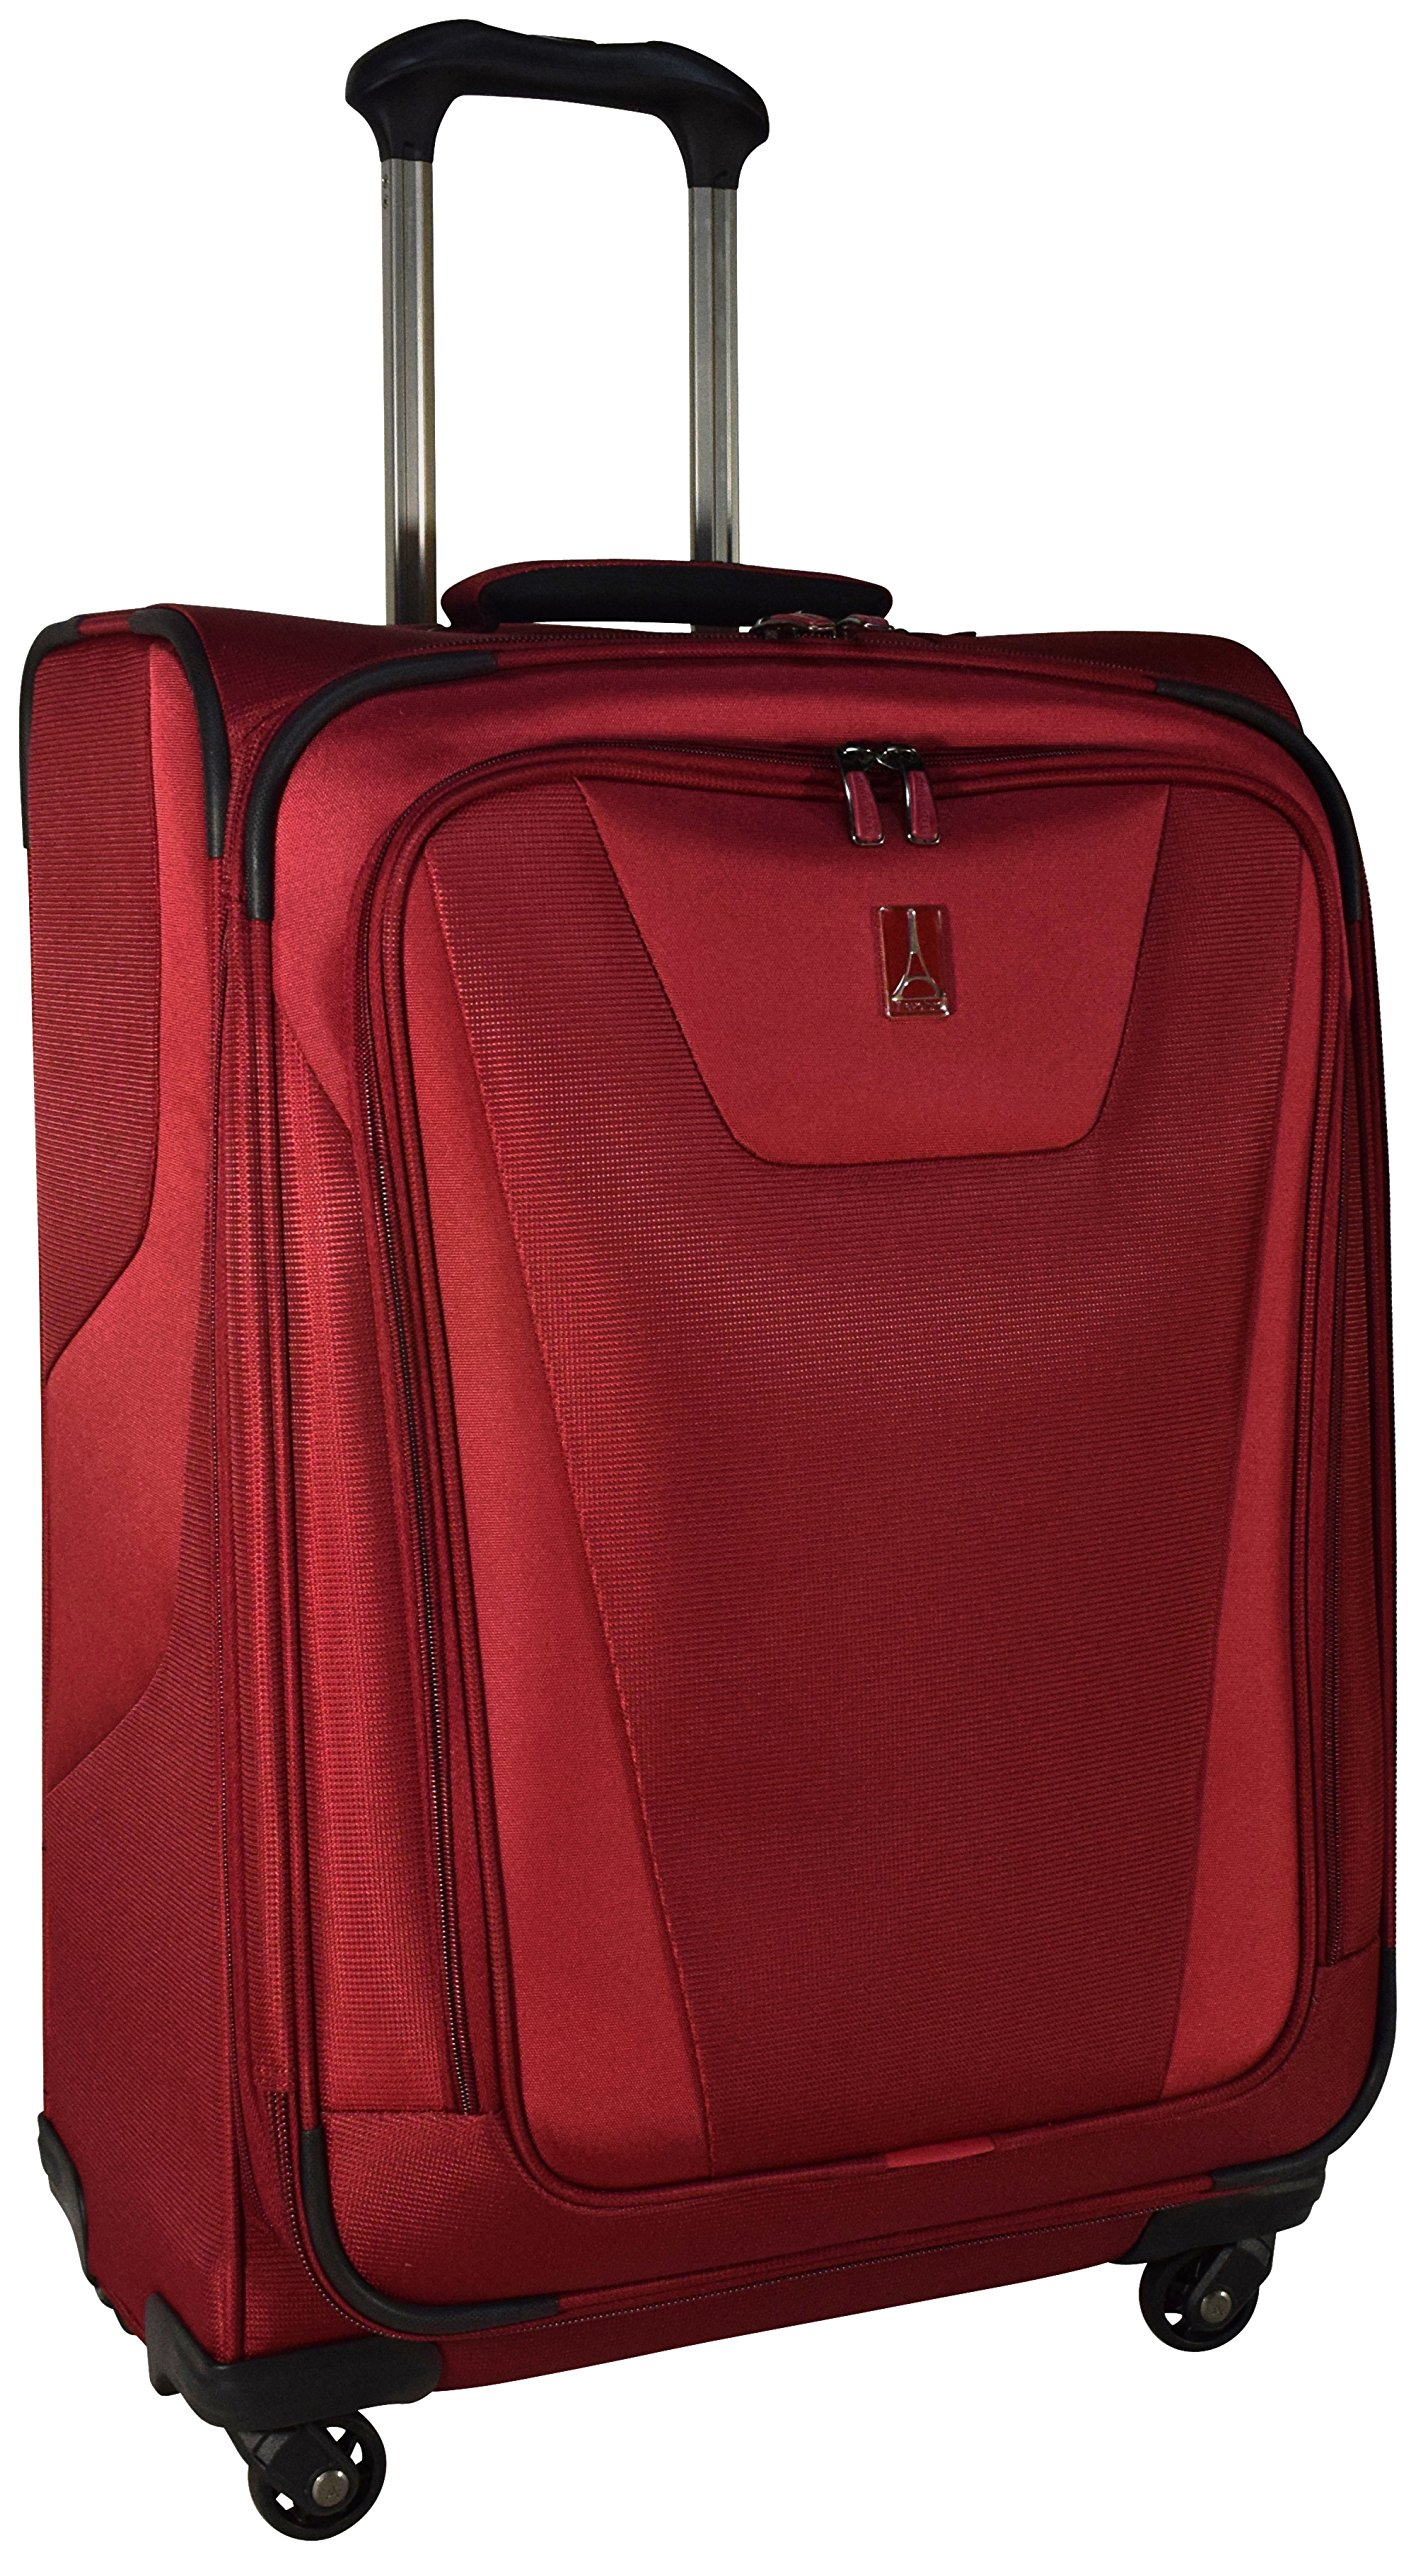 Travelpro Maxlite 4 Expandable 25 Inch Spinner Suitcase (Merlot)